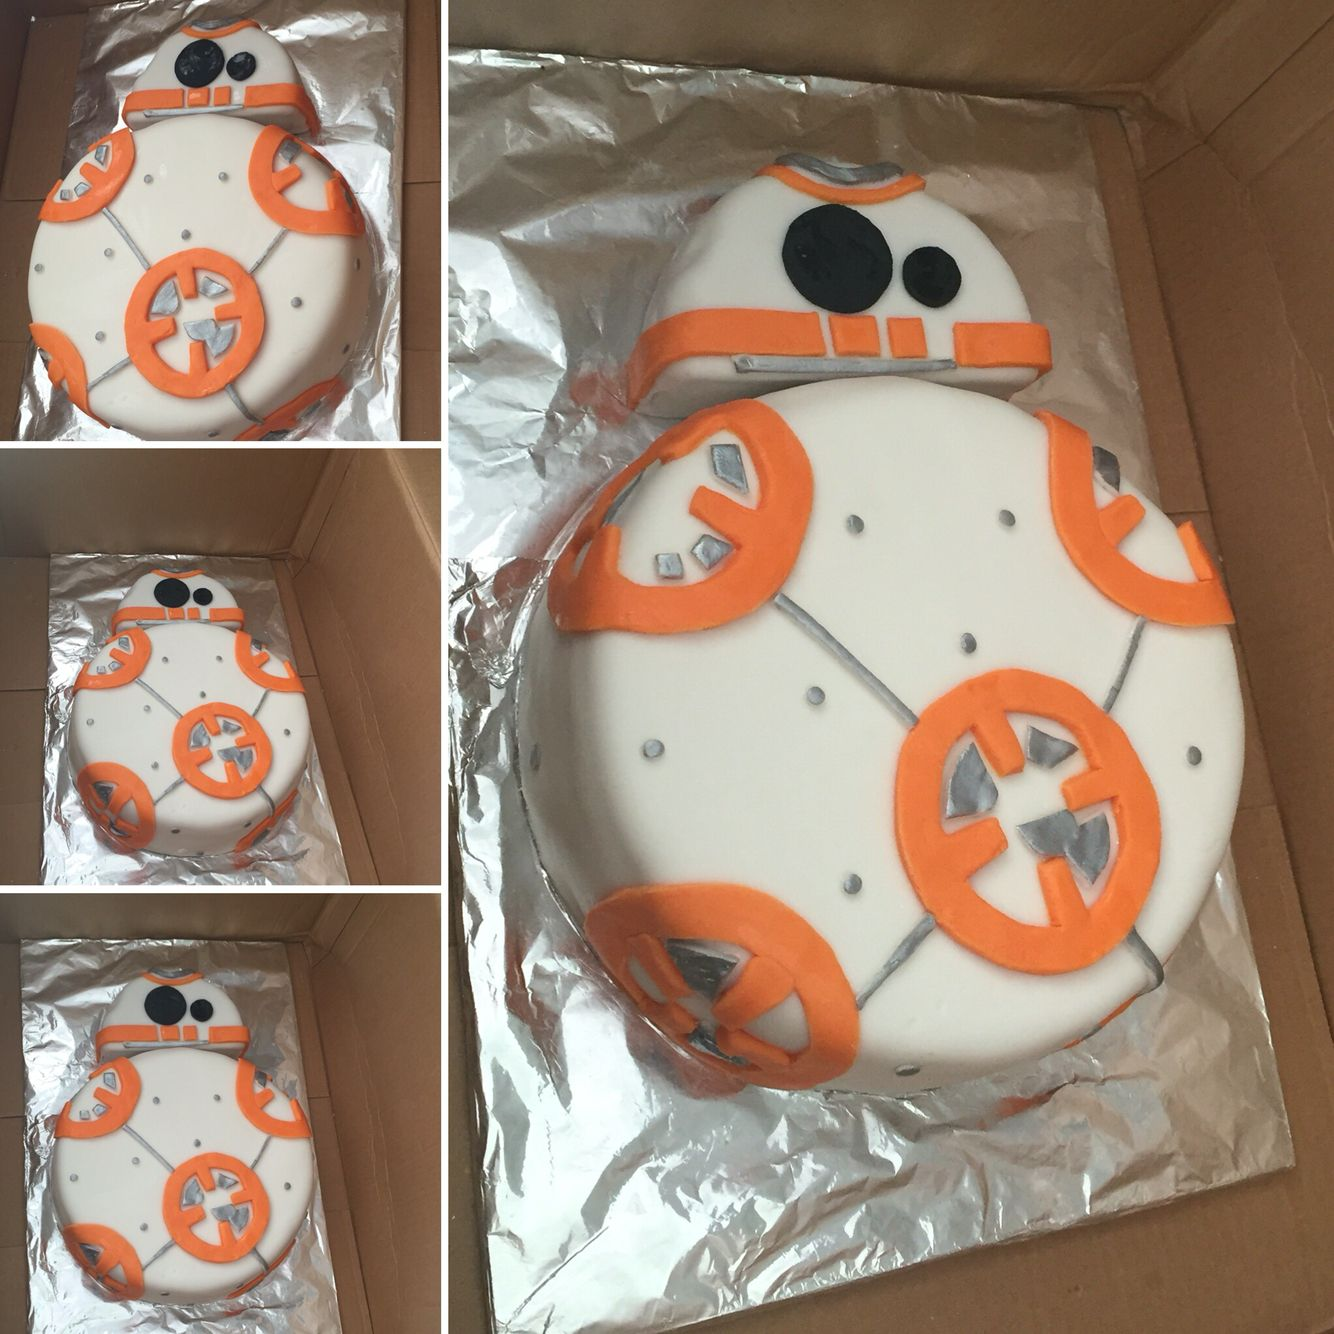 My Bb 8 Droid Cake For My Sons 5th Birthday Star Wars Birthday